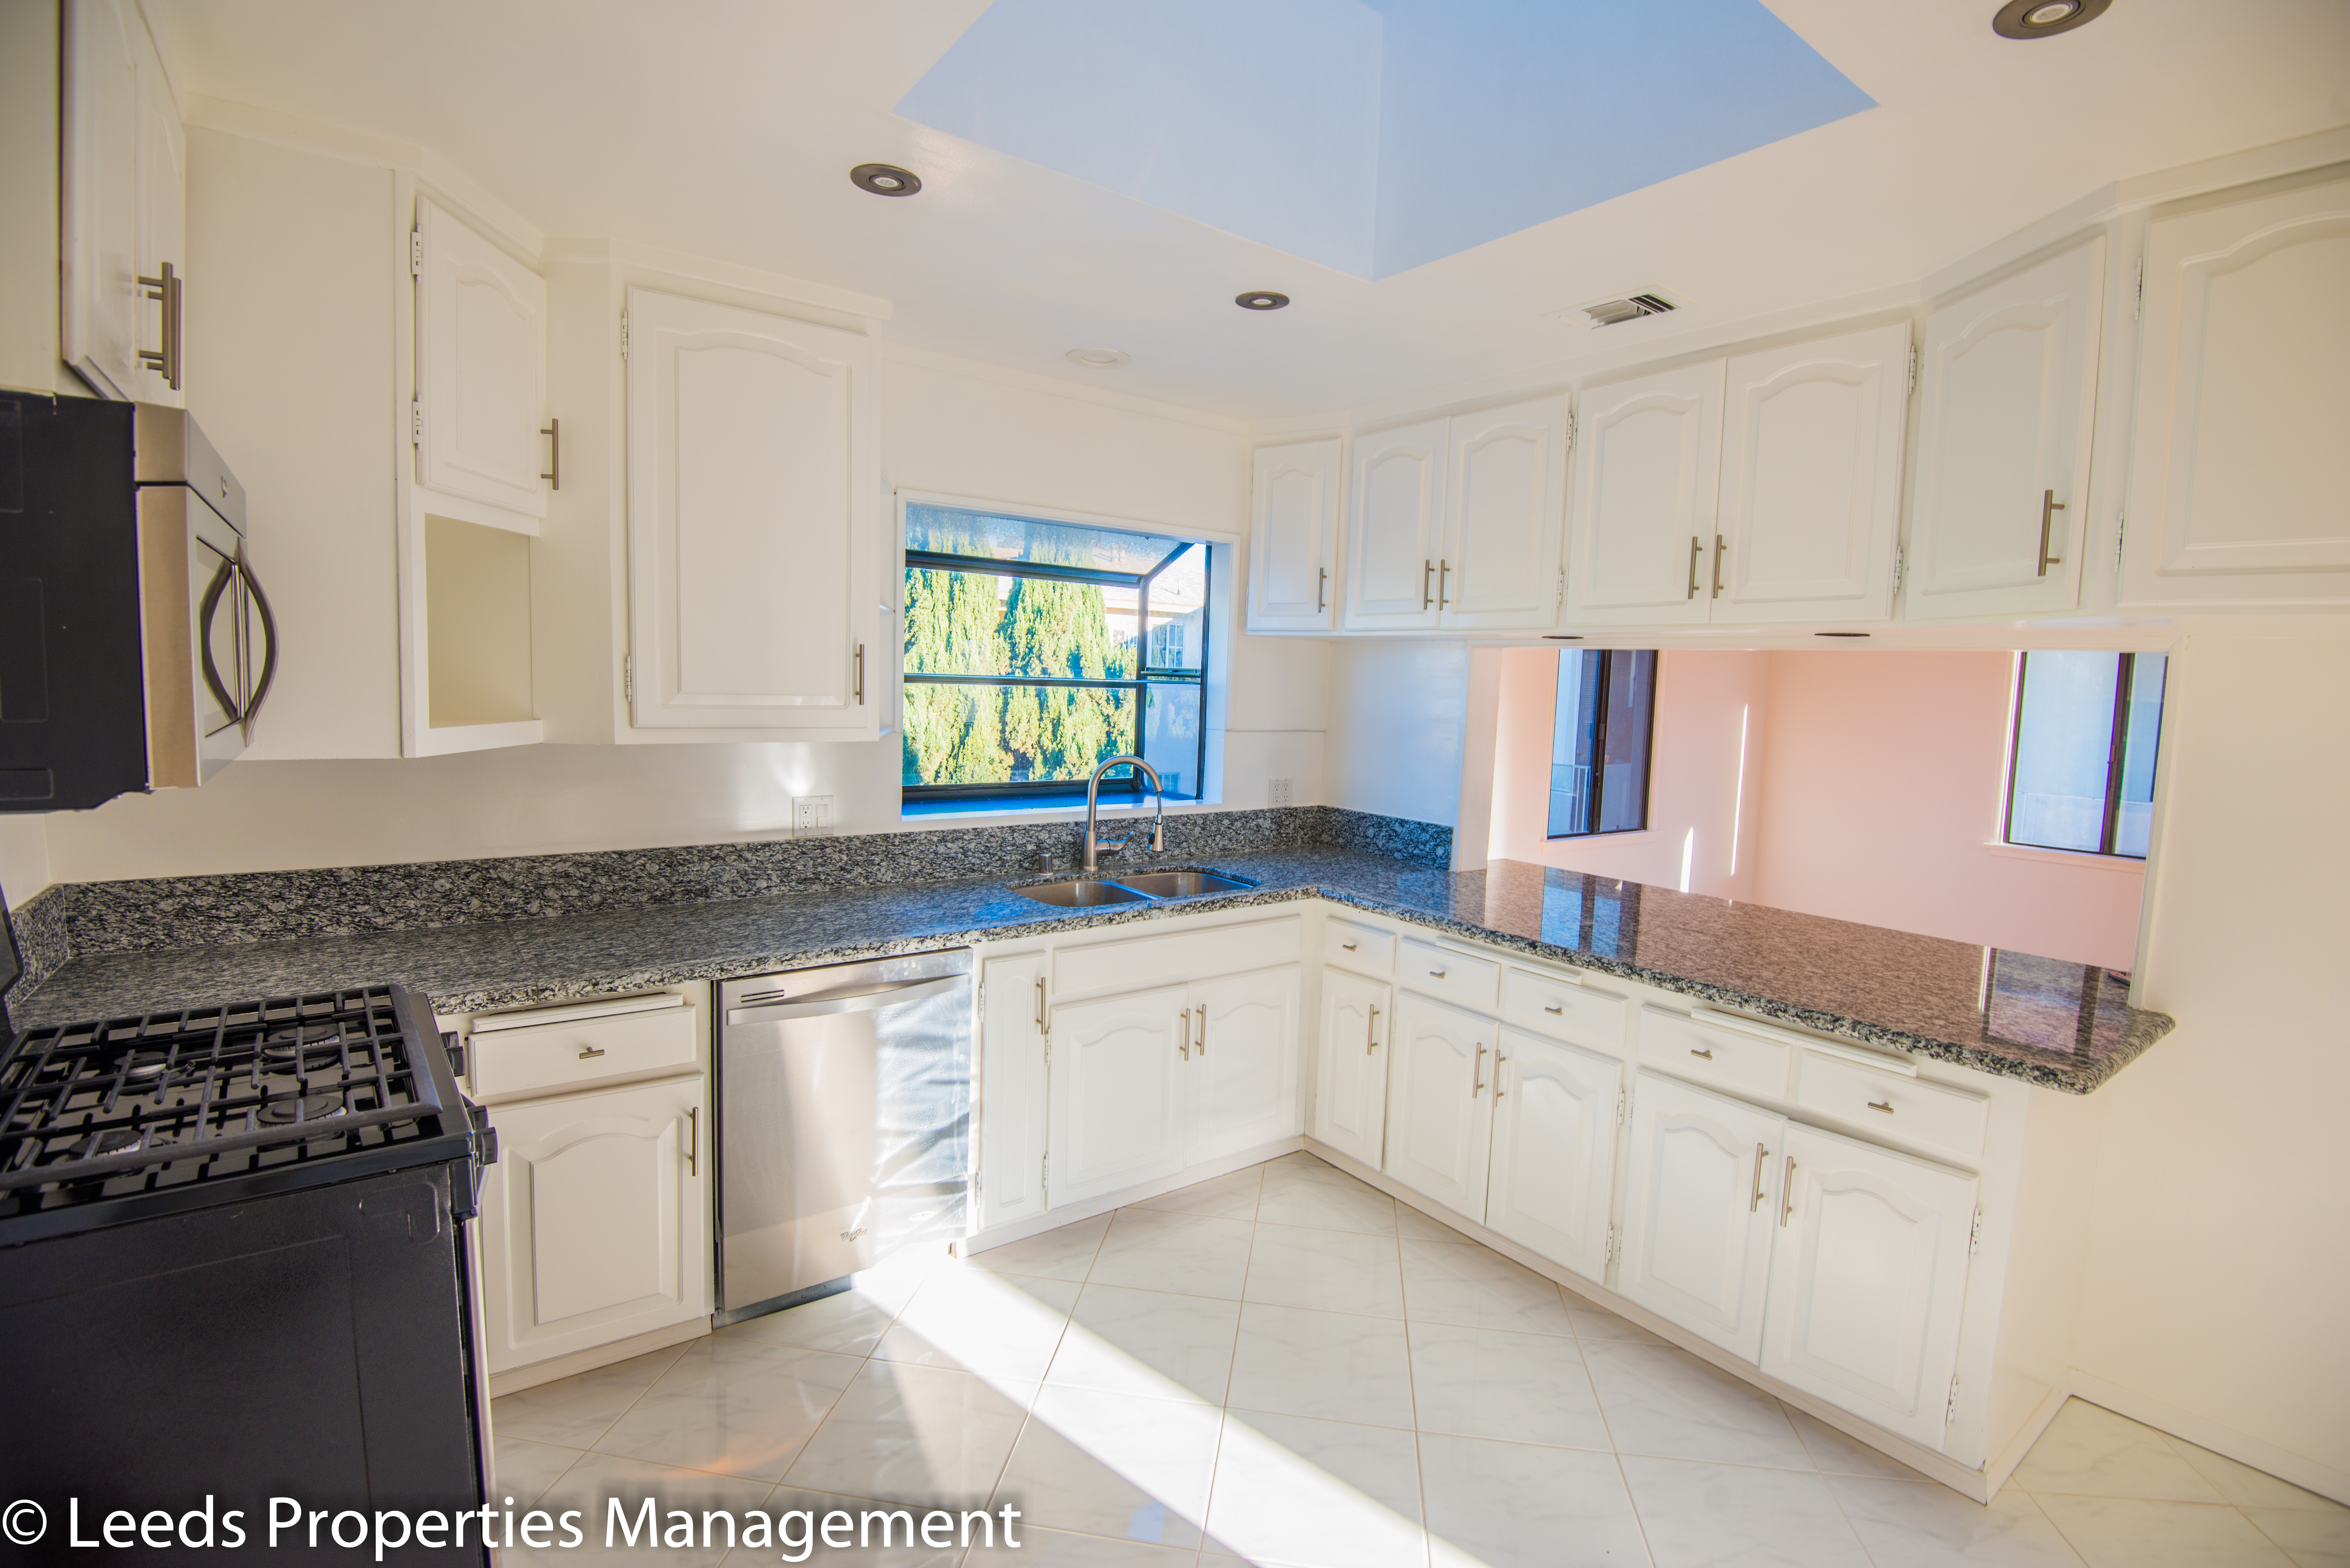 2622 28th St., Santa Monica, CA 90405